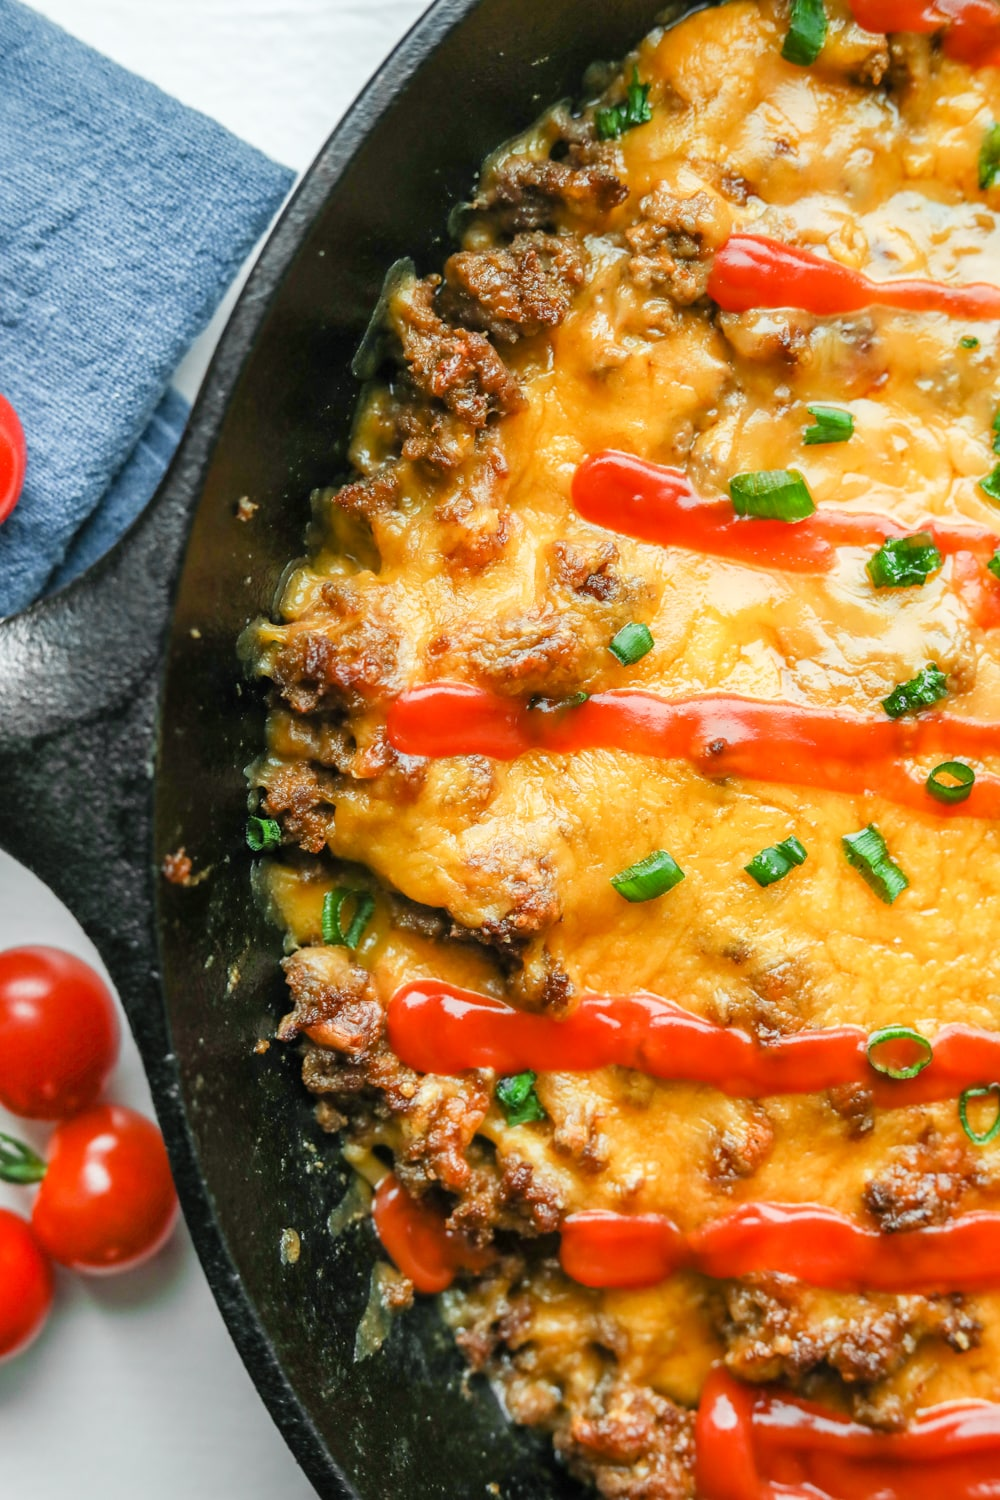 Half of a keto cheeseburger casserole covered in chives and low carb ketchup.